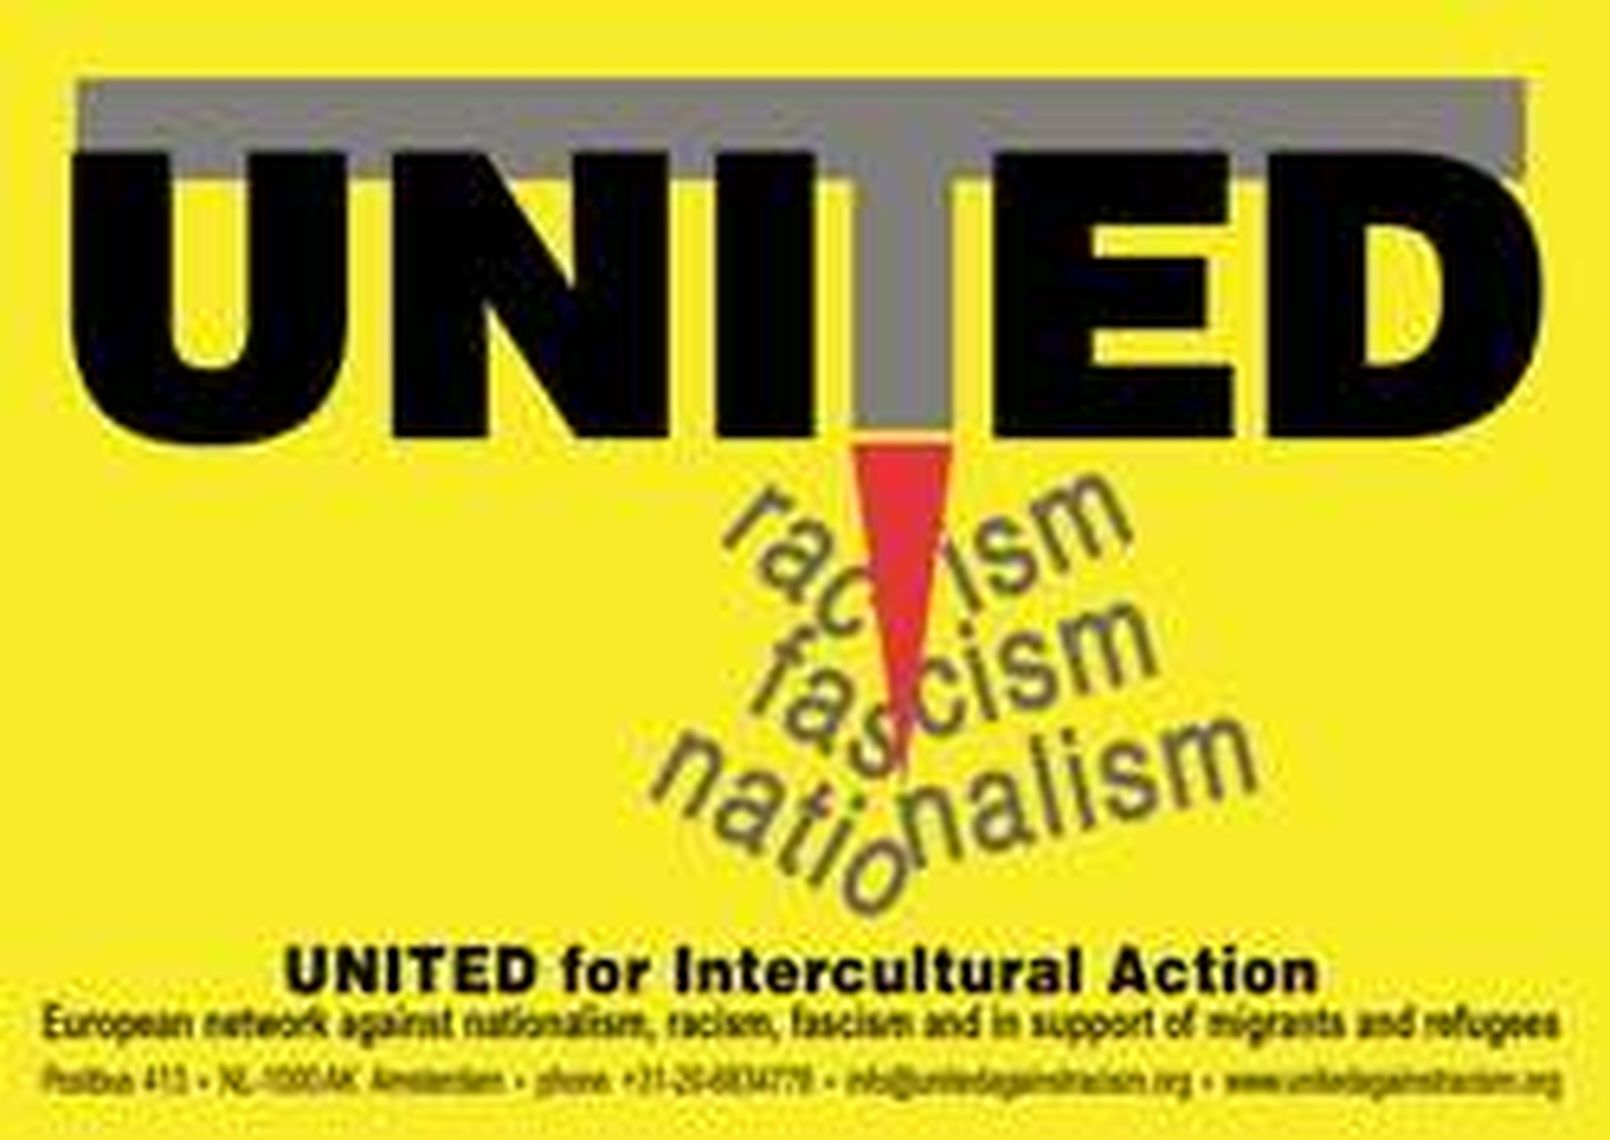 sticker-united